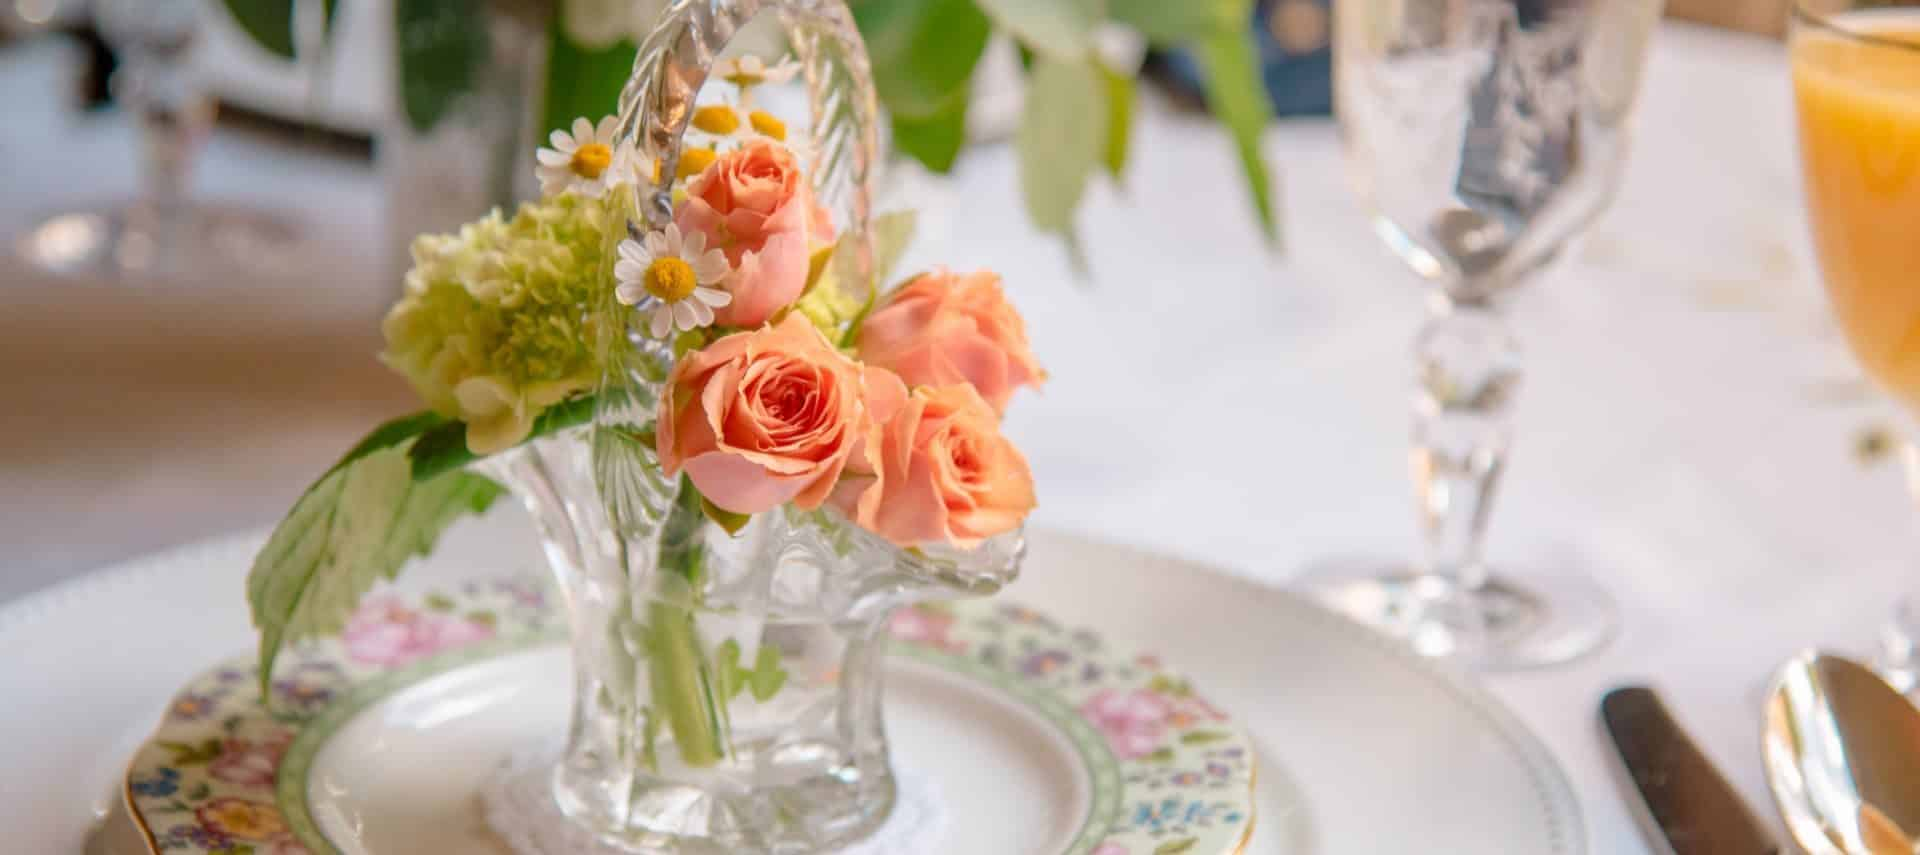 Small glass basket filled with peach roses and white daisies sitting on top of fine china